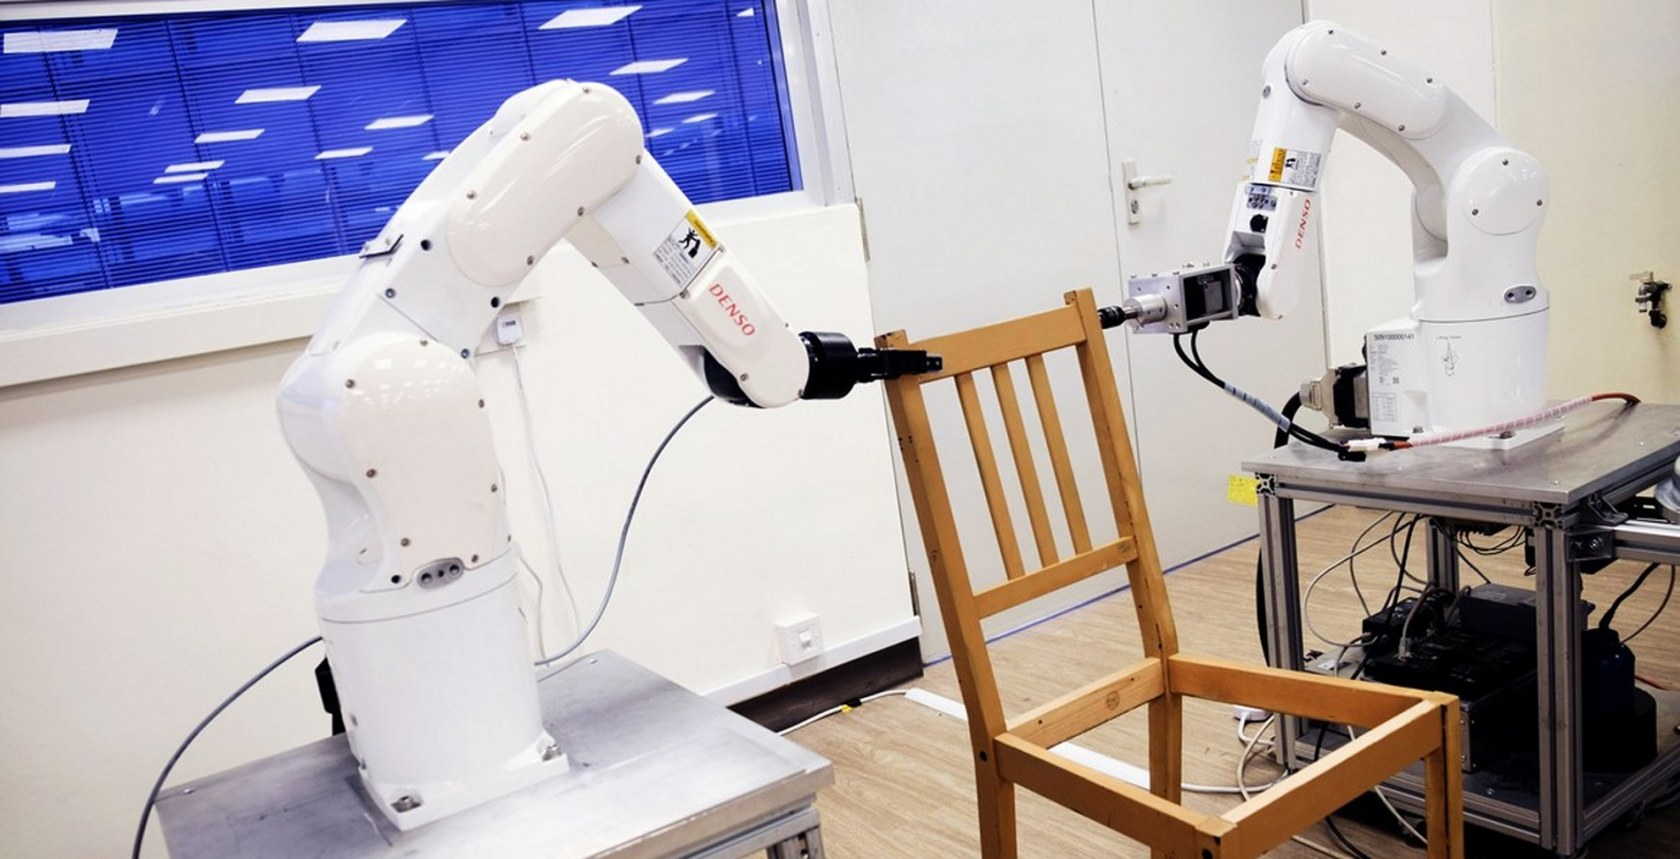 Rest easy, even robots have trouble with IKEA furniture